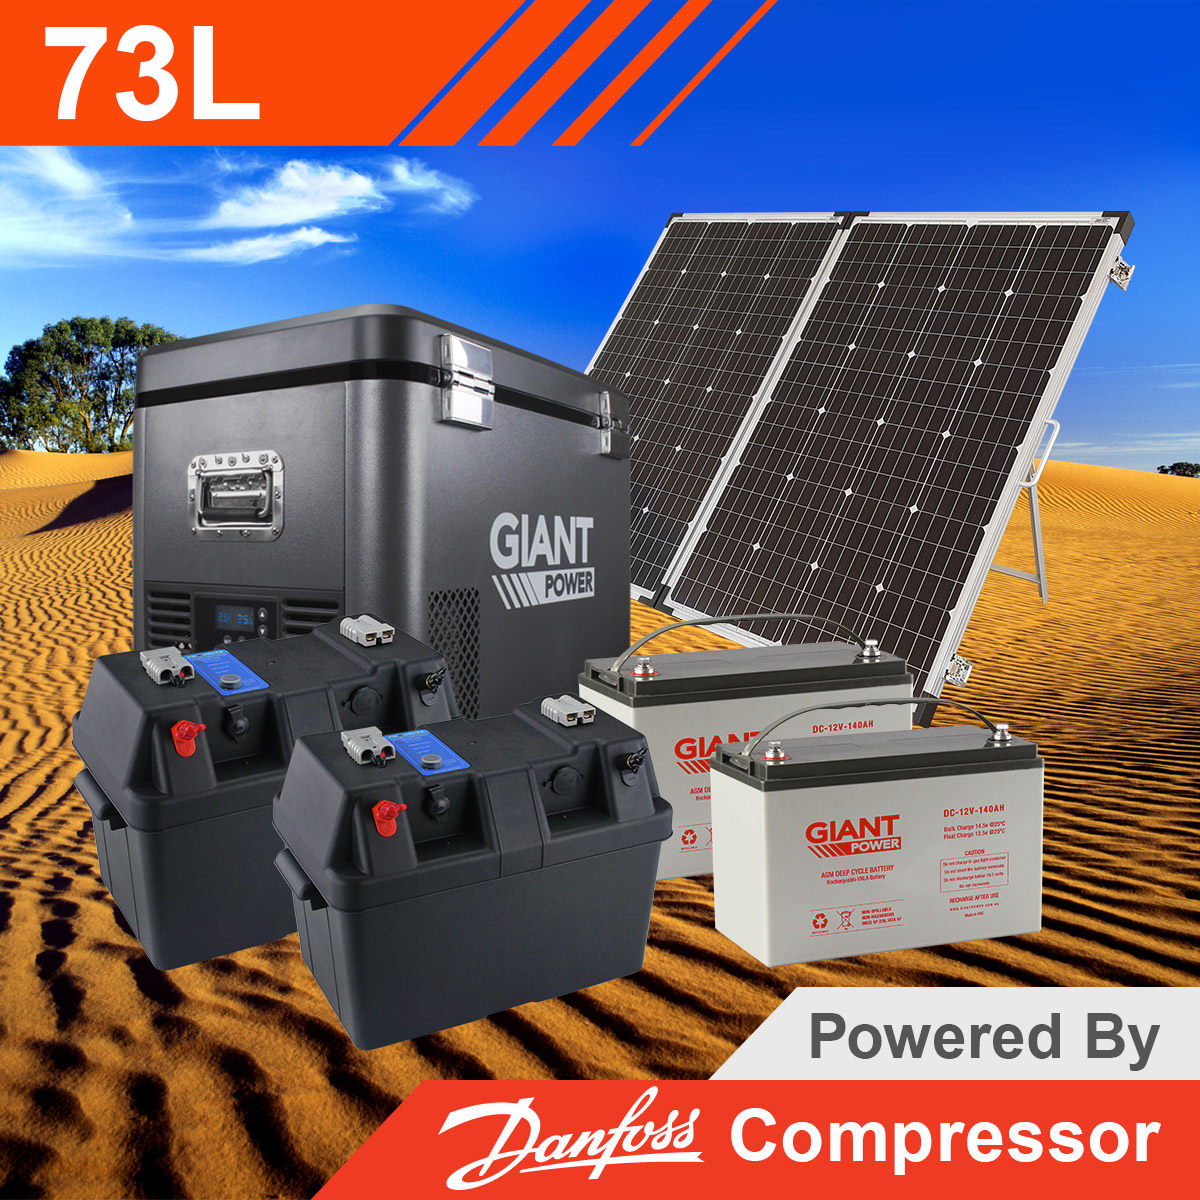 Giant Power 73l Portable Fridge Kit For Camping With